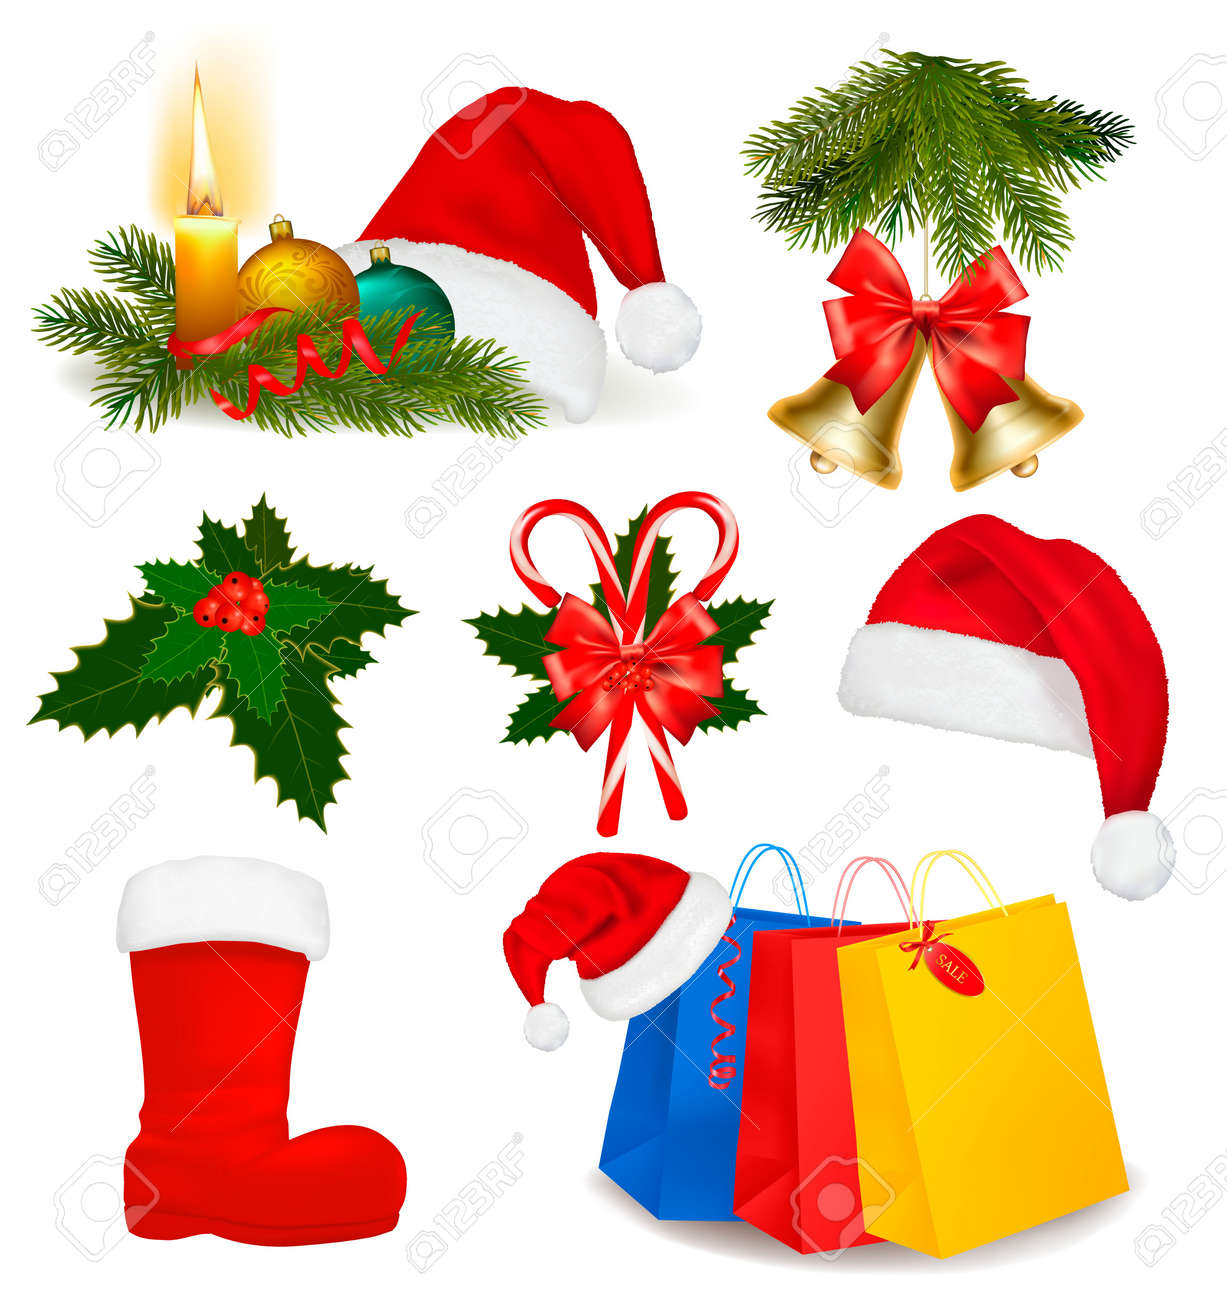 Set of Christmas objects. Vector. Stock Vector - 11271365